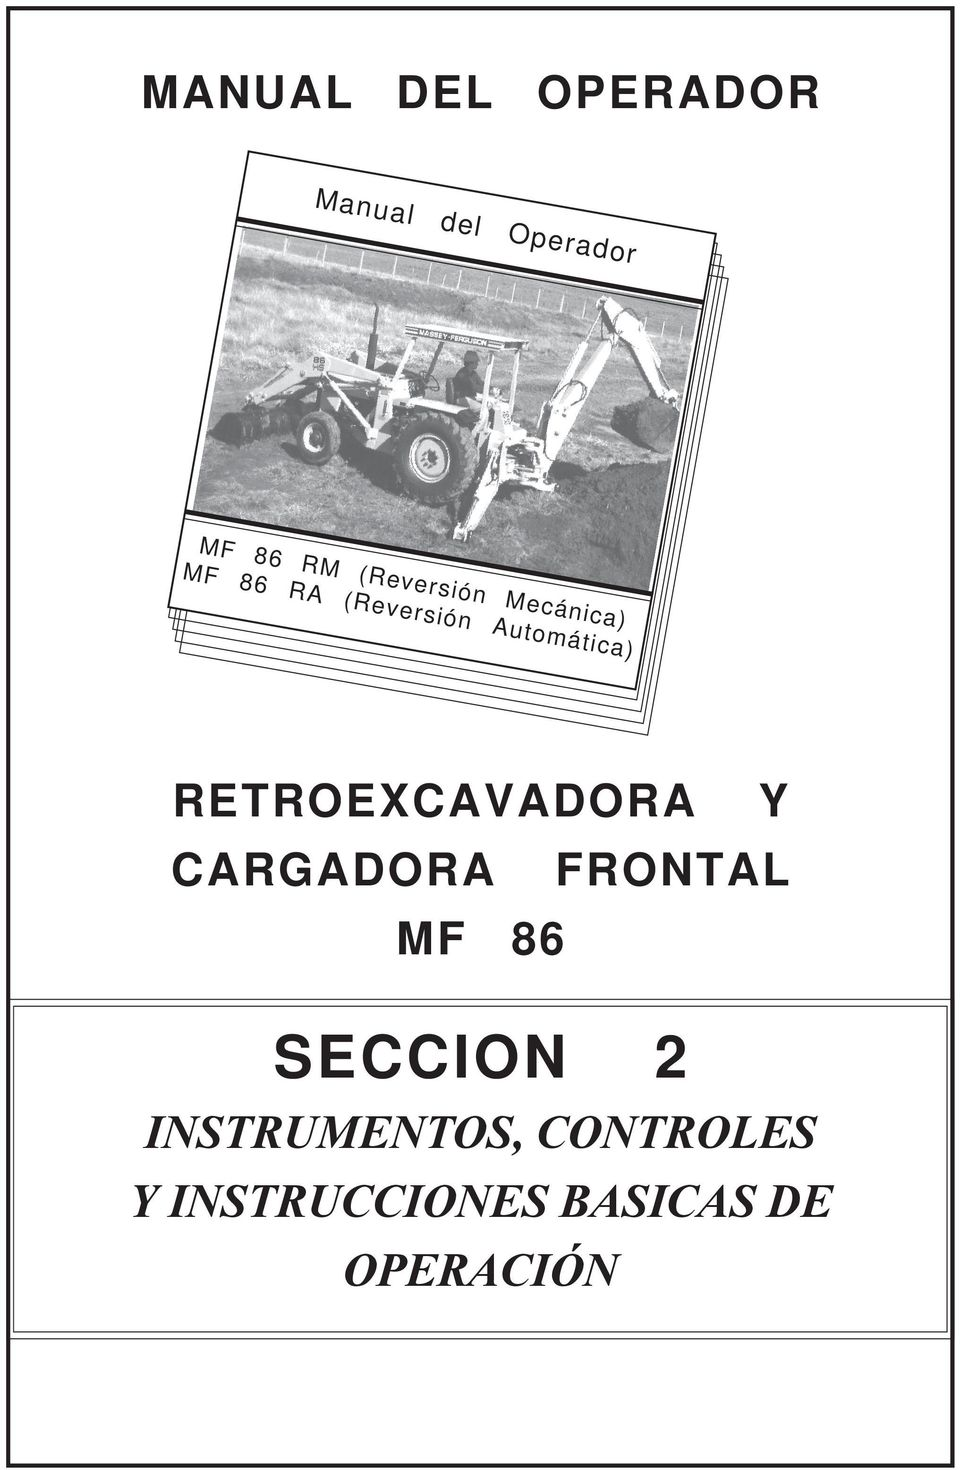 RETROEXCAVADORA Y CARGADORA FRONTAL MF 86 SECCION 2